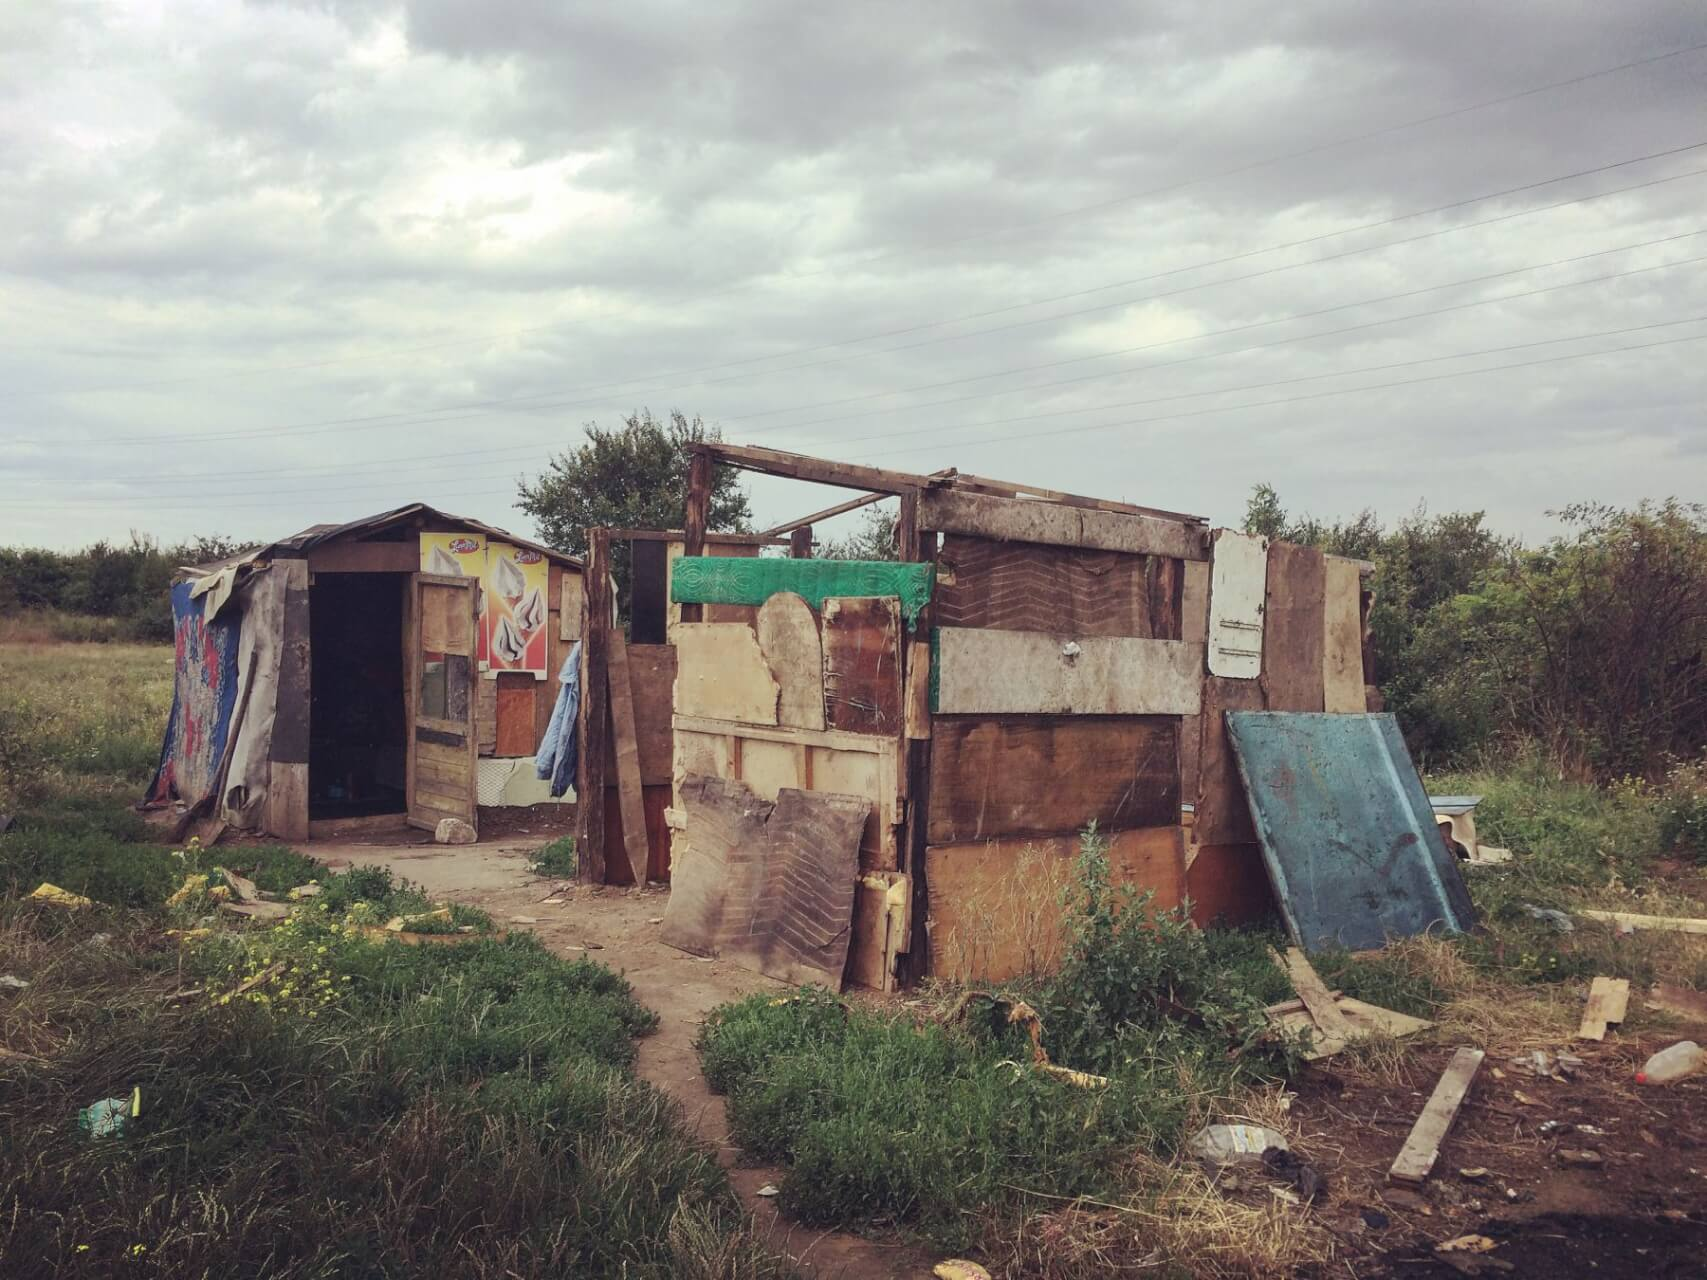 Shelter, safety, a home, by Lauren Woodward in Oradea, Romania